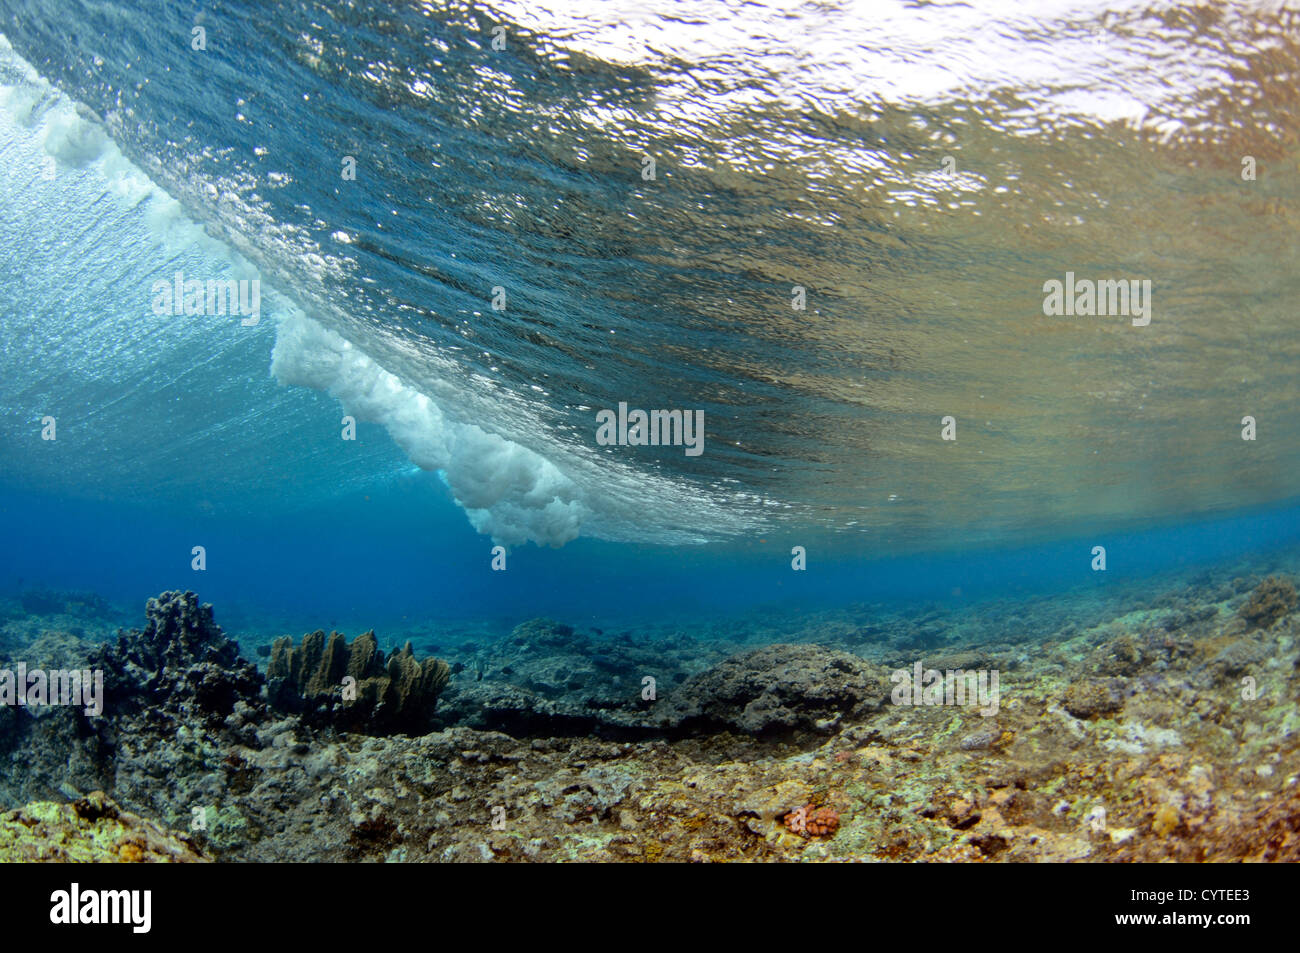 Wave breaking on reef, seen from below the surface, Palikir Pass, Pohnpei, Federated States of Micronesia - Stock Image